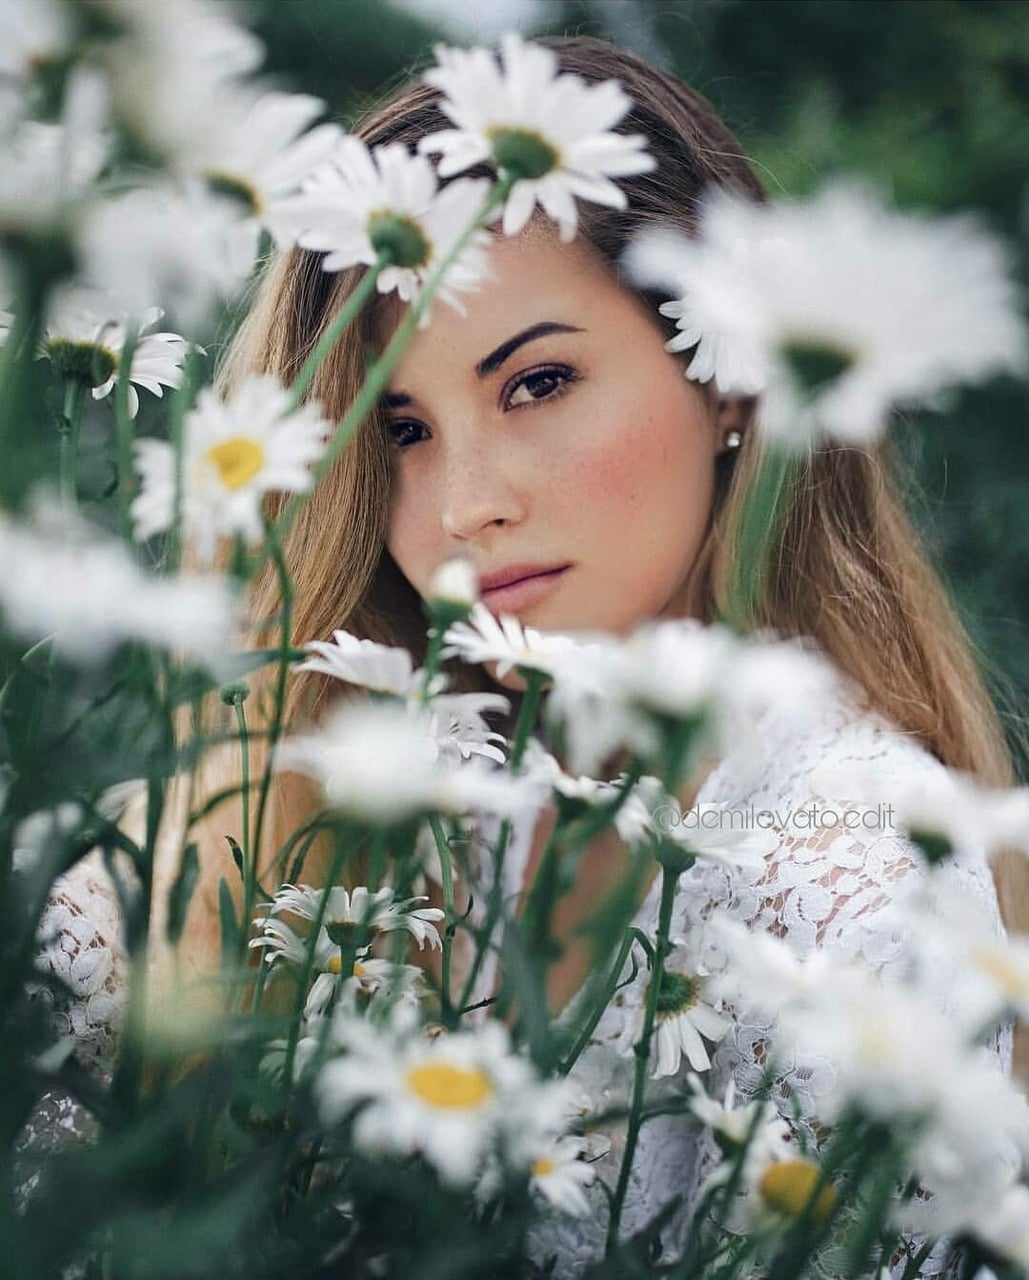 flowers, demi and natural beauty